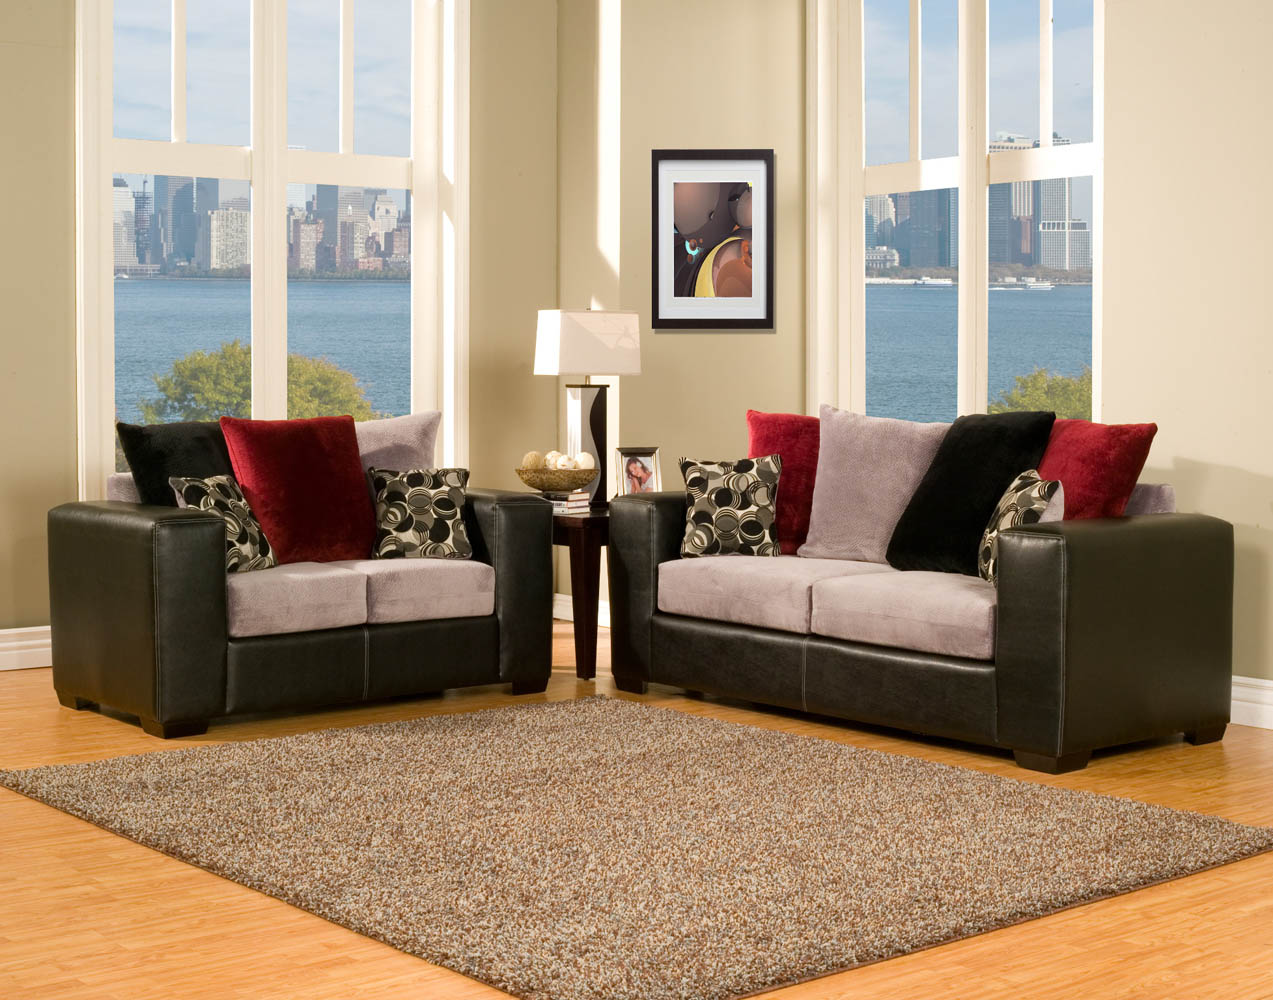 2 Piece Black Grey And Red Modern Sofa Set